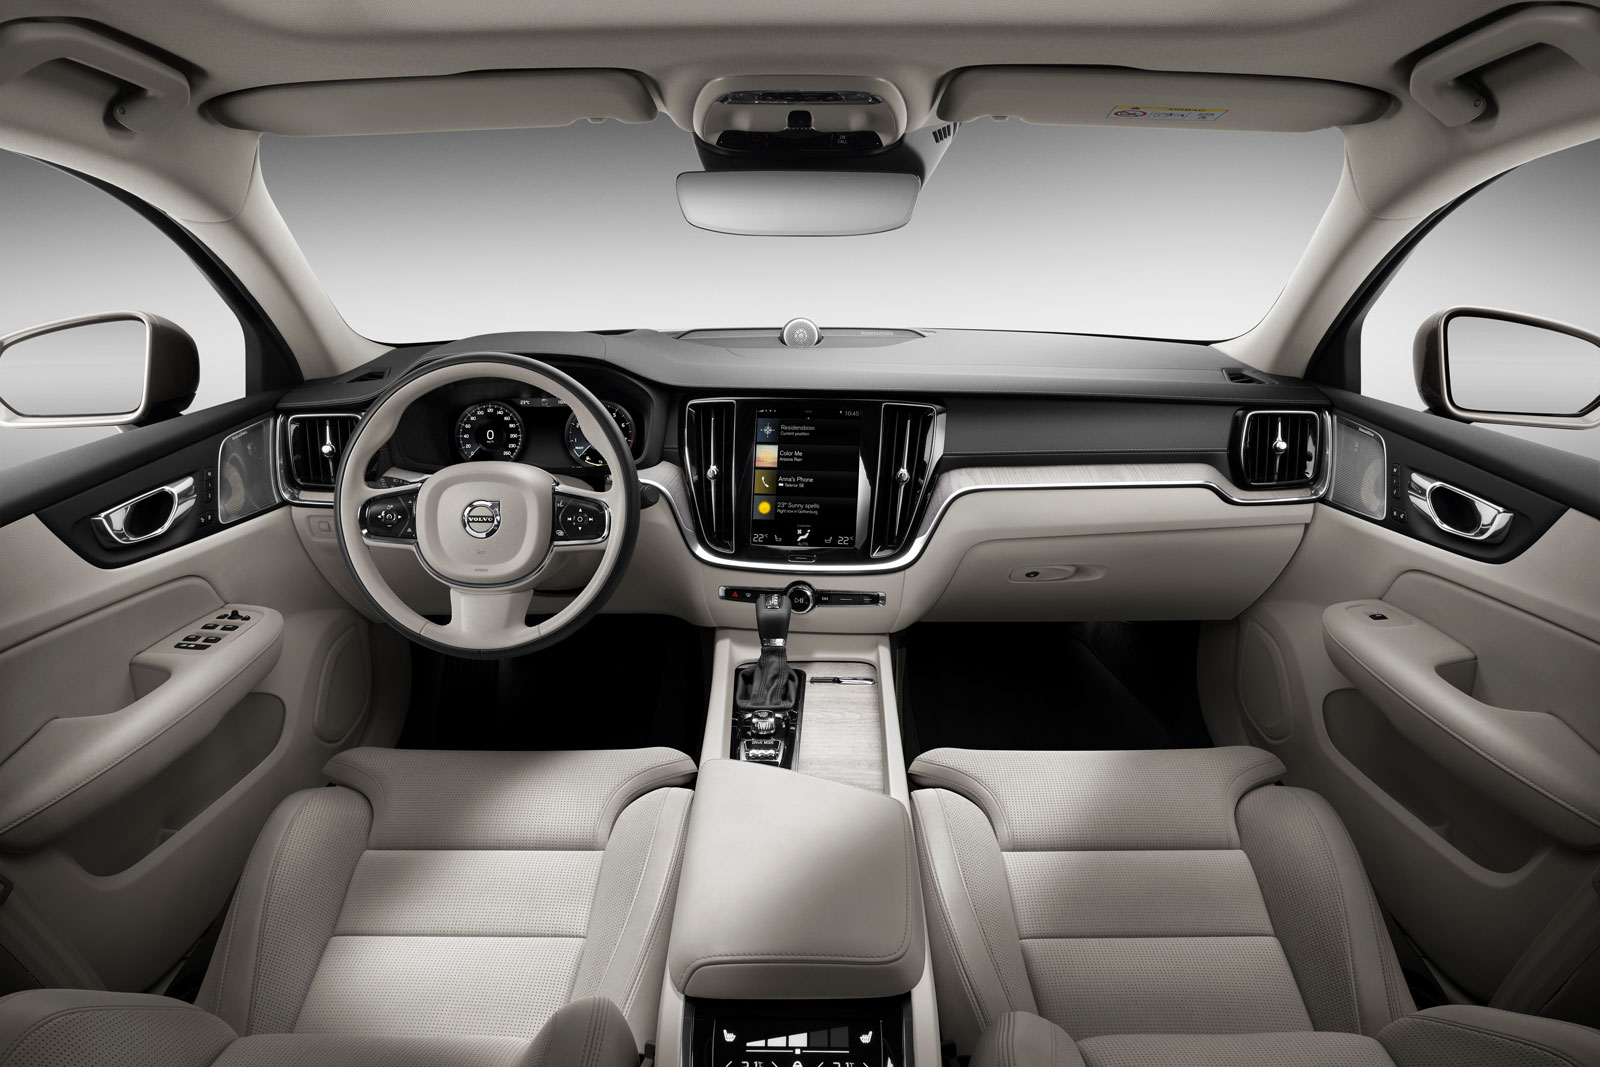 Volvo S60 Inscription Interior Design - Car Body Design